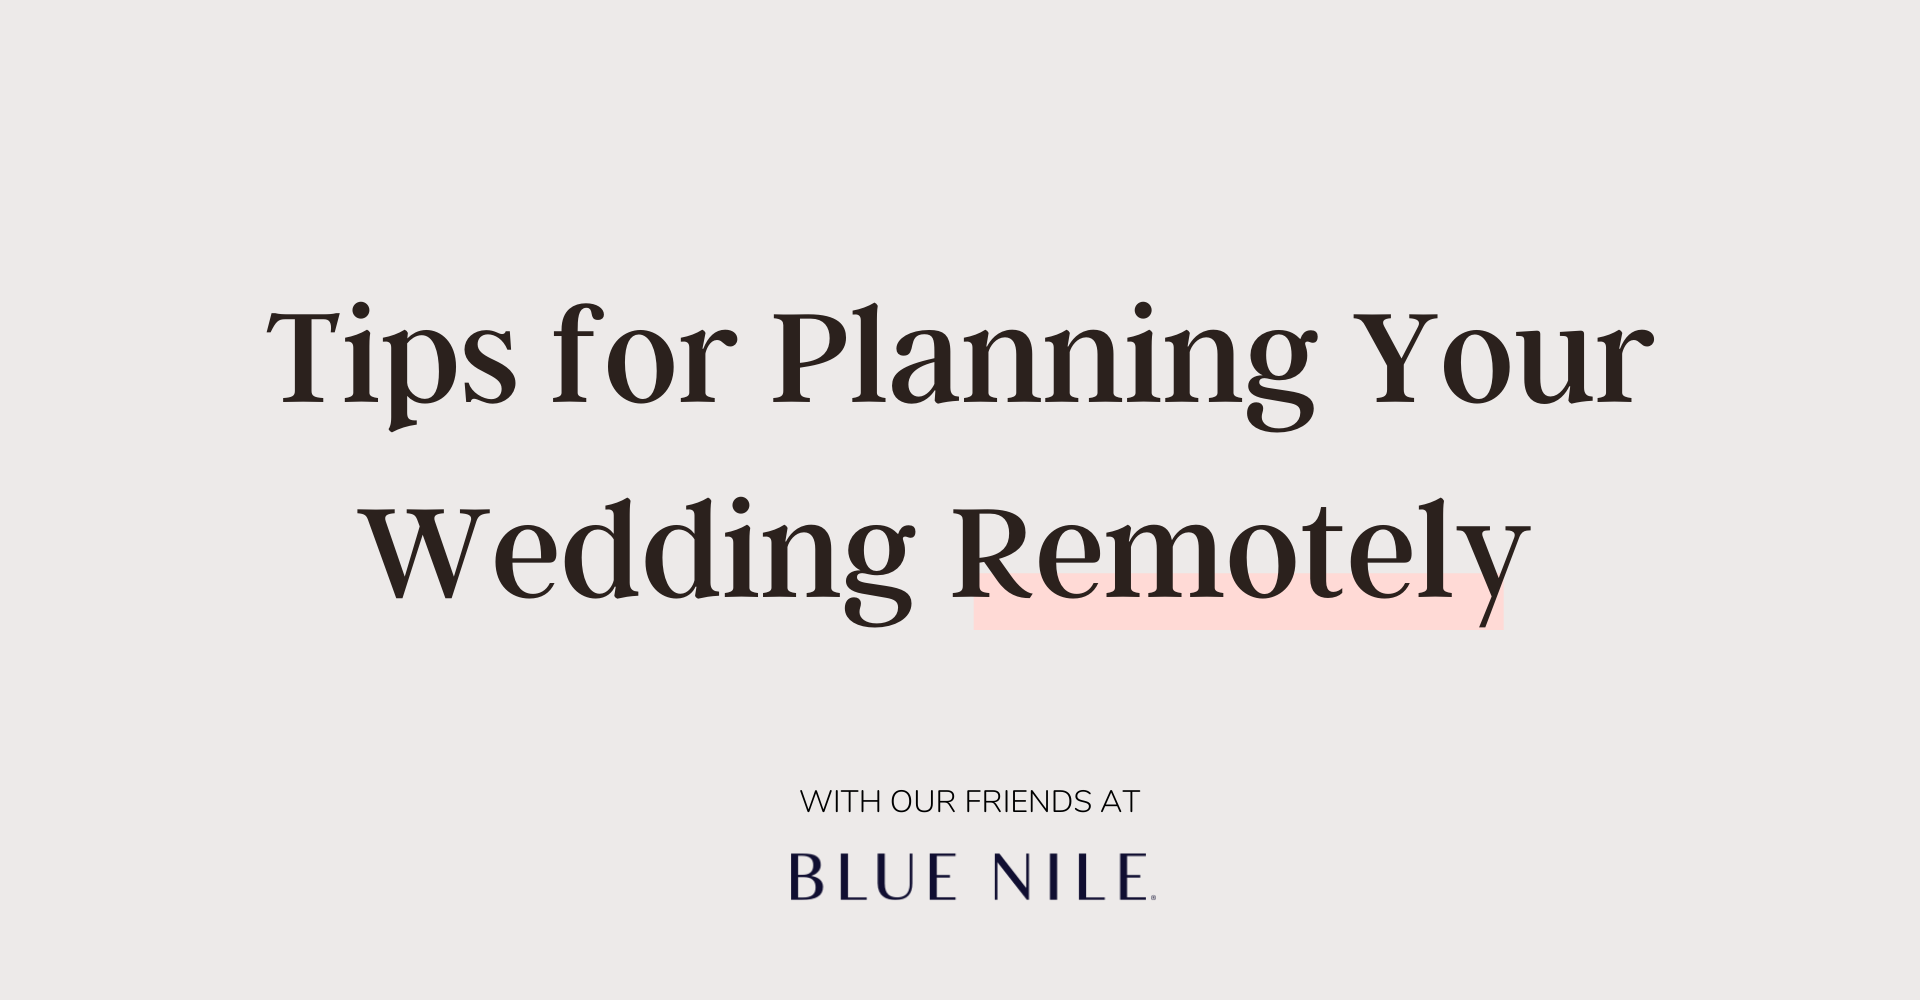 Tips for Planning Your Wedding Remotely